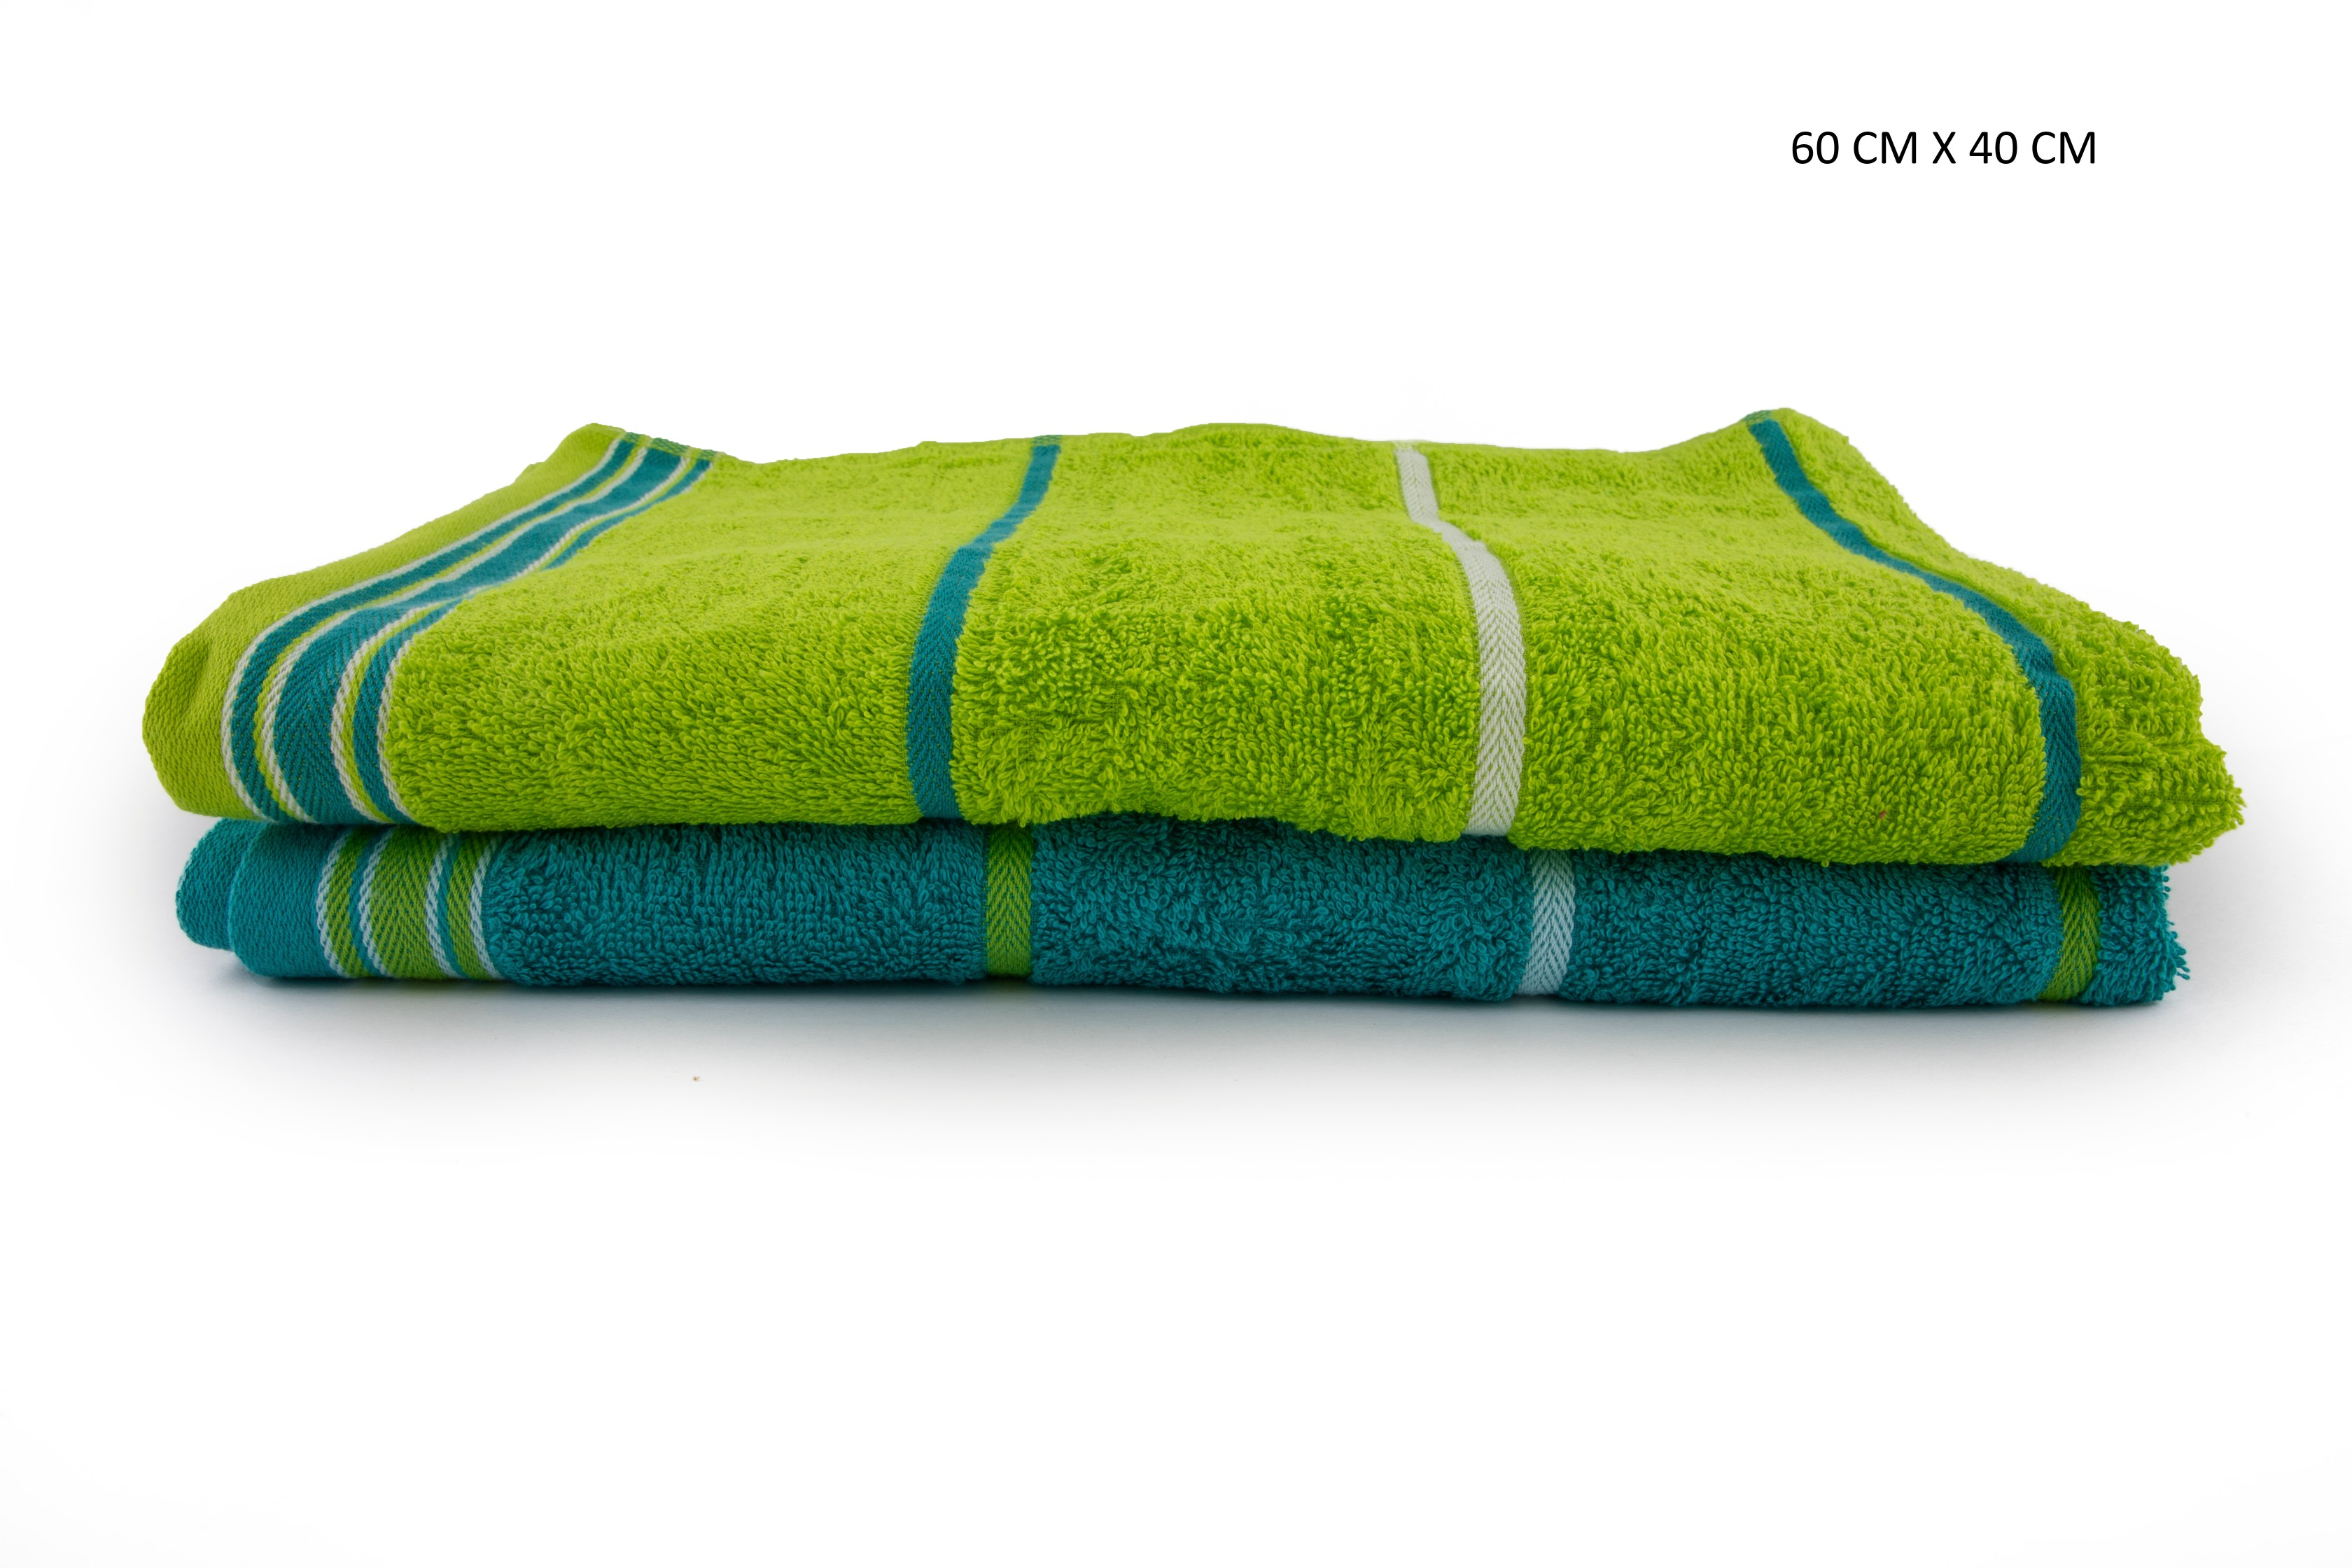 Emilia Handtowel Set Of 2 Cotton Hand Towels in Teal & Lime Colour by HomeTown